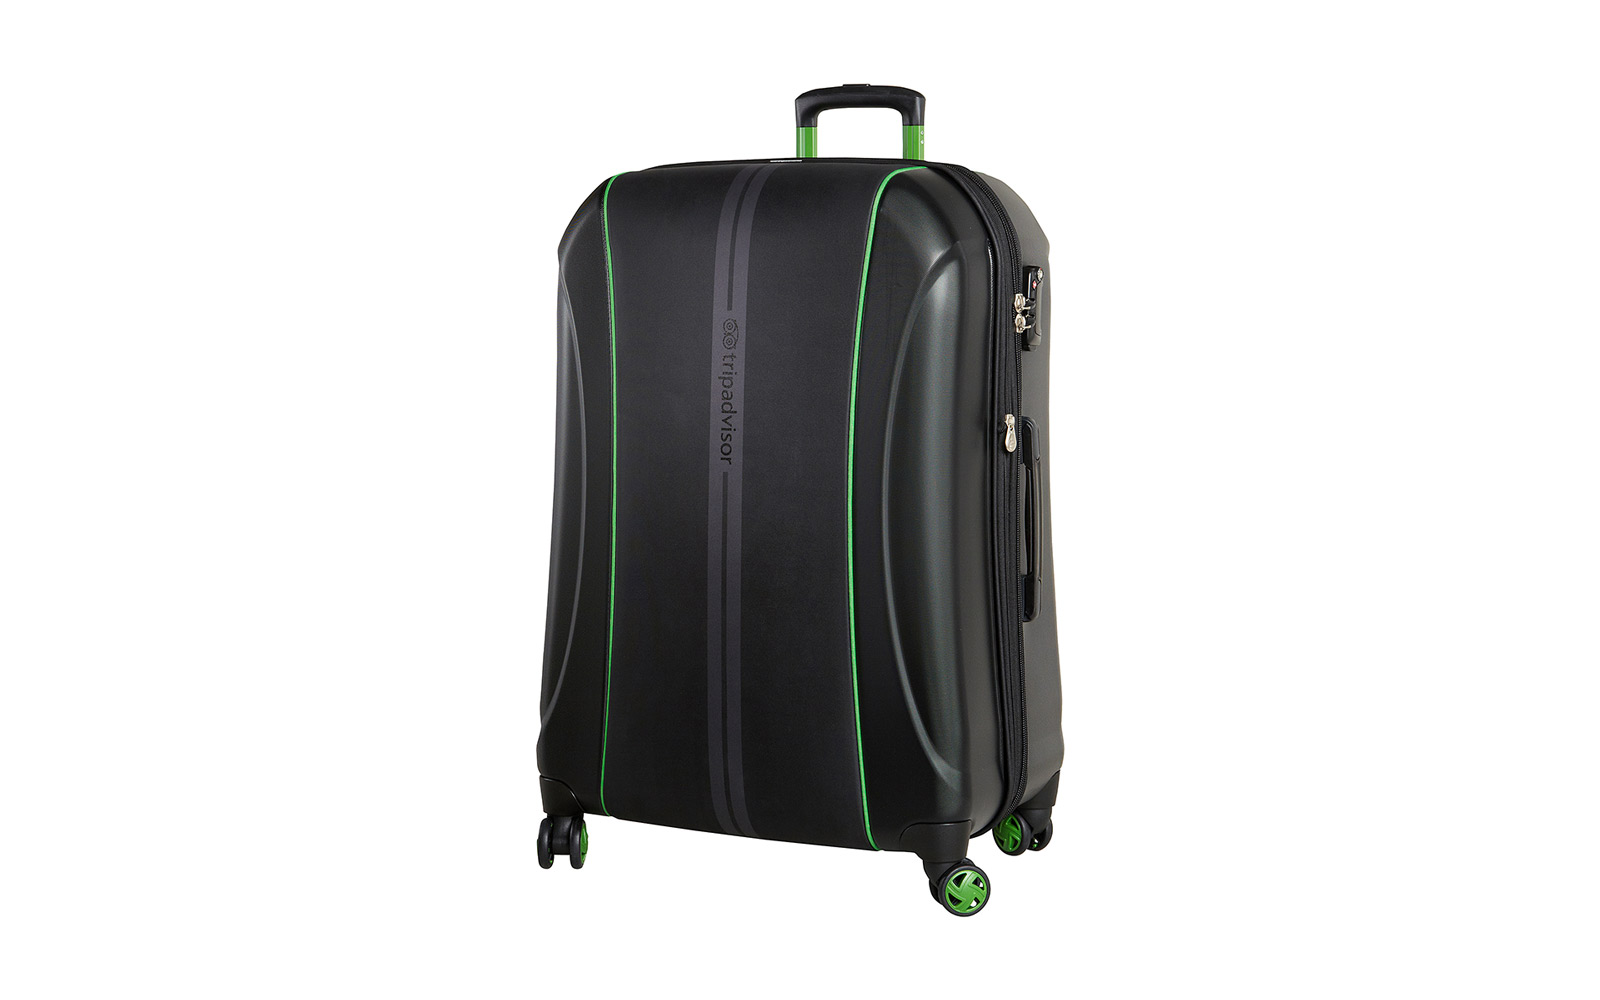 TripAdvisor and eBags Luggage Partnership